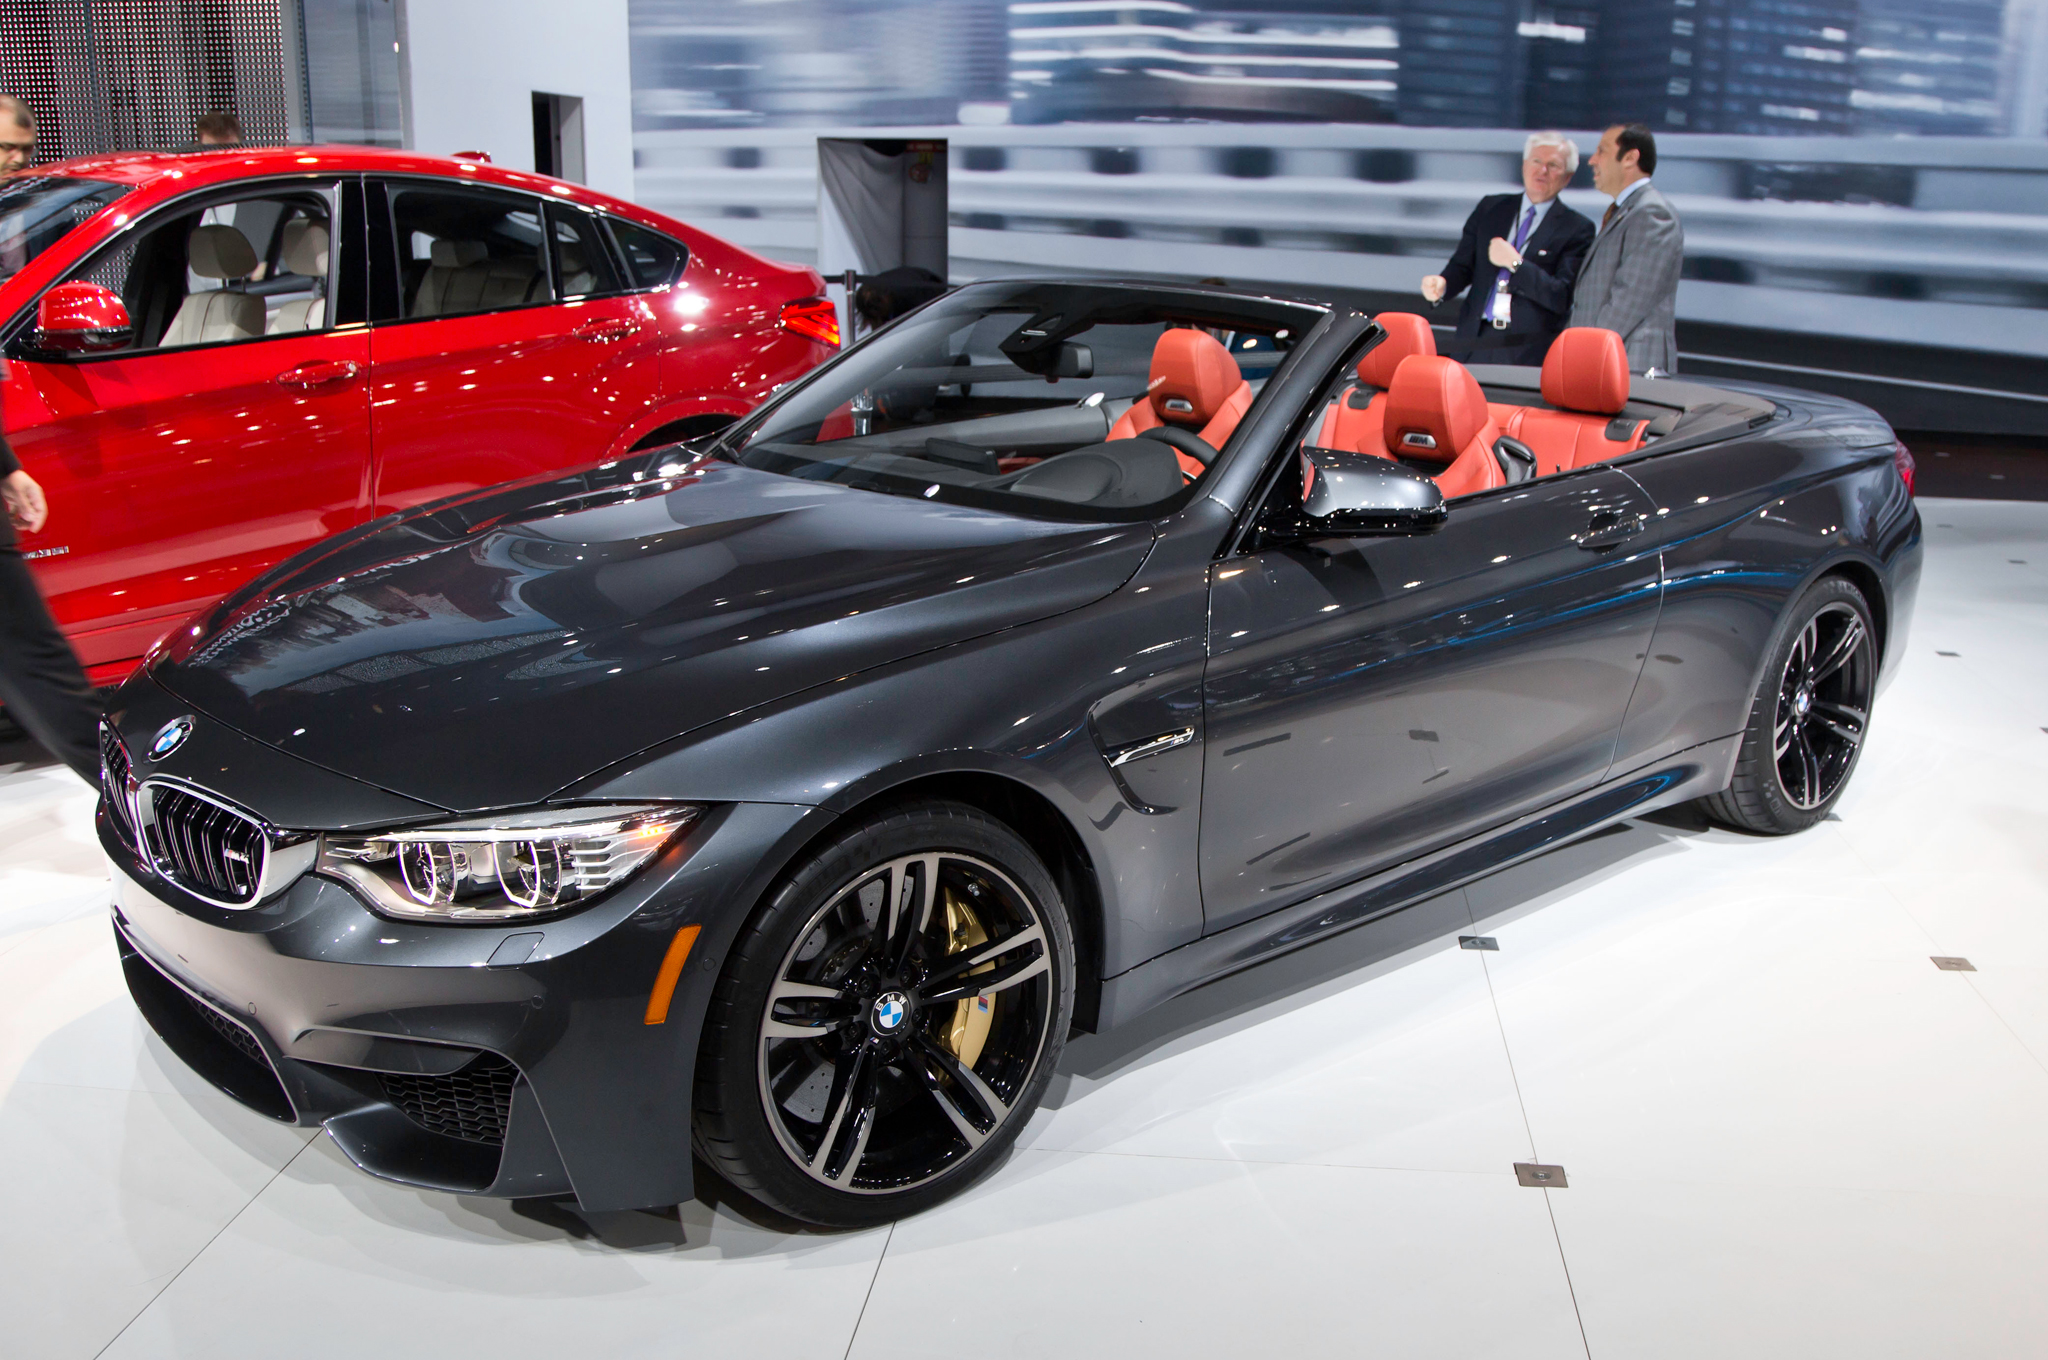 2015 BMW M4 Convertible to Debut at 2014 New York Auto Show - Motor ...